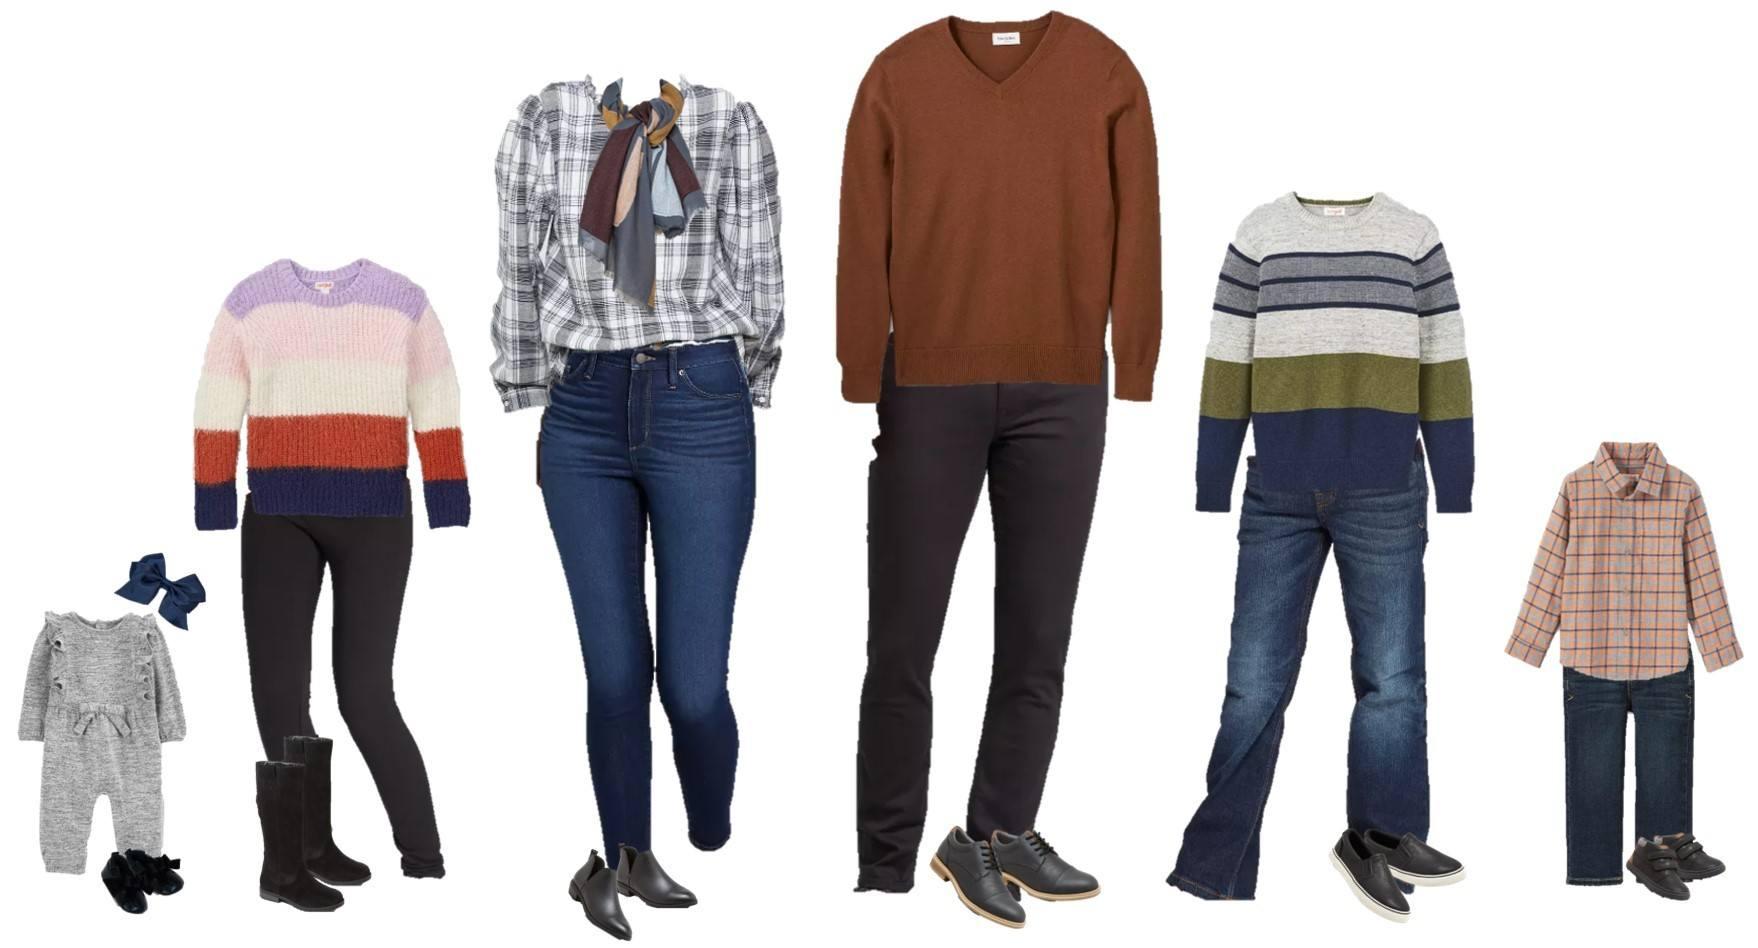 casual coordinated family outfits - plaid tops, sweaters and jeans